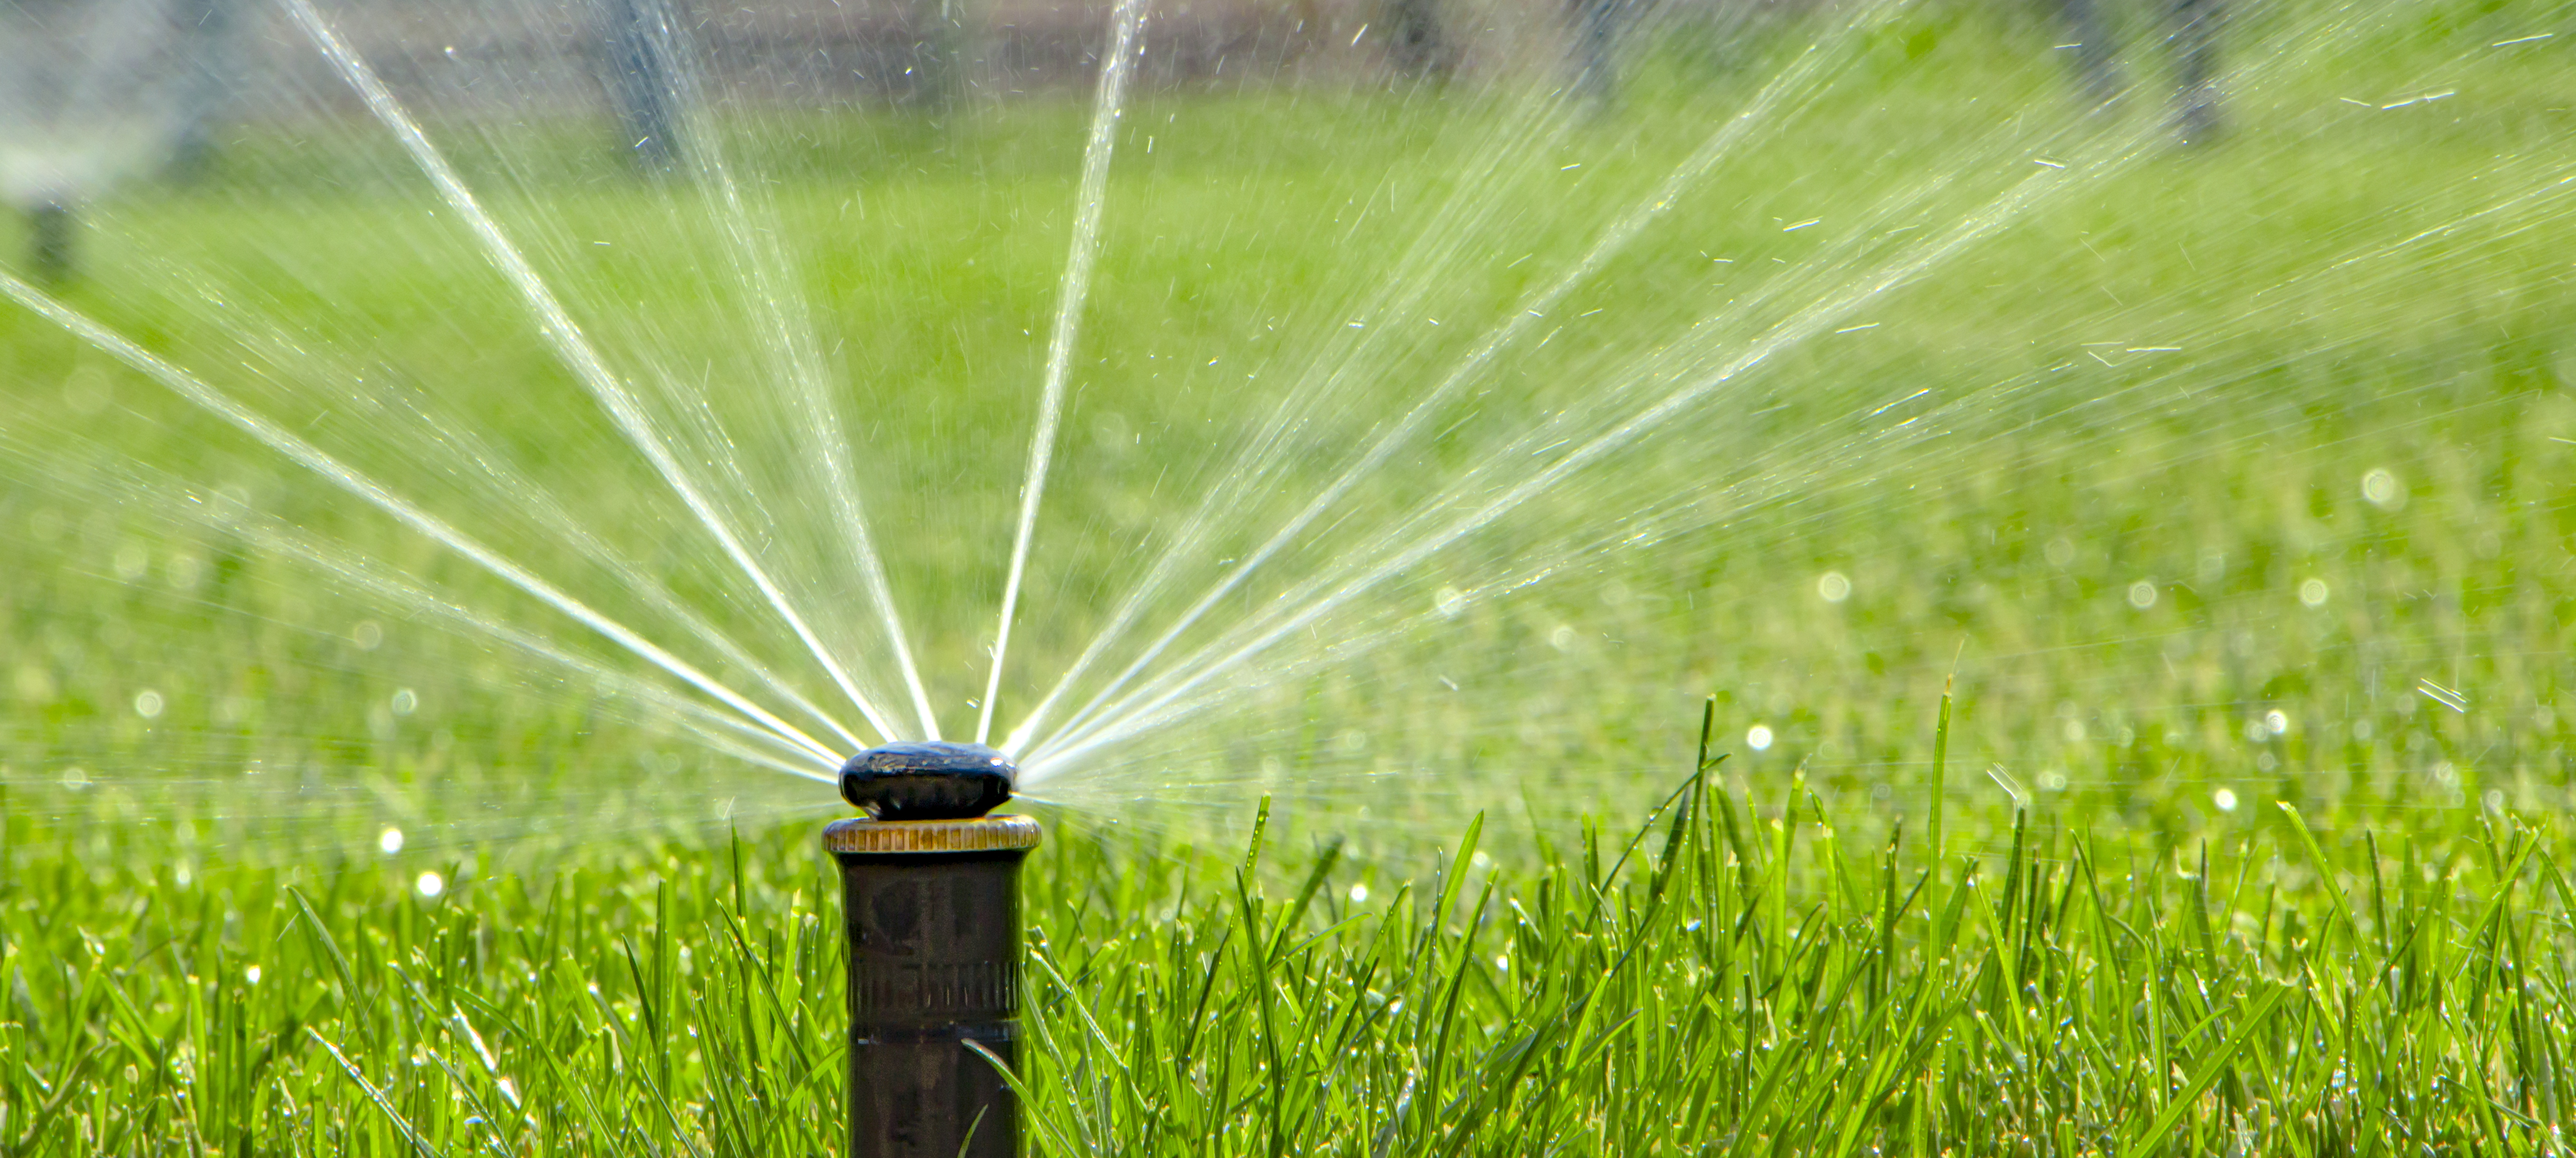 How to Fix a Sprinkler Head that Stays in an Up Position